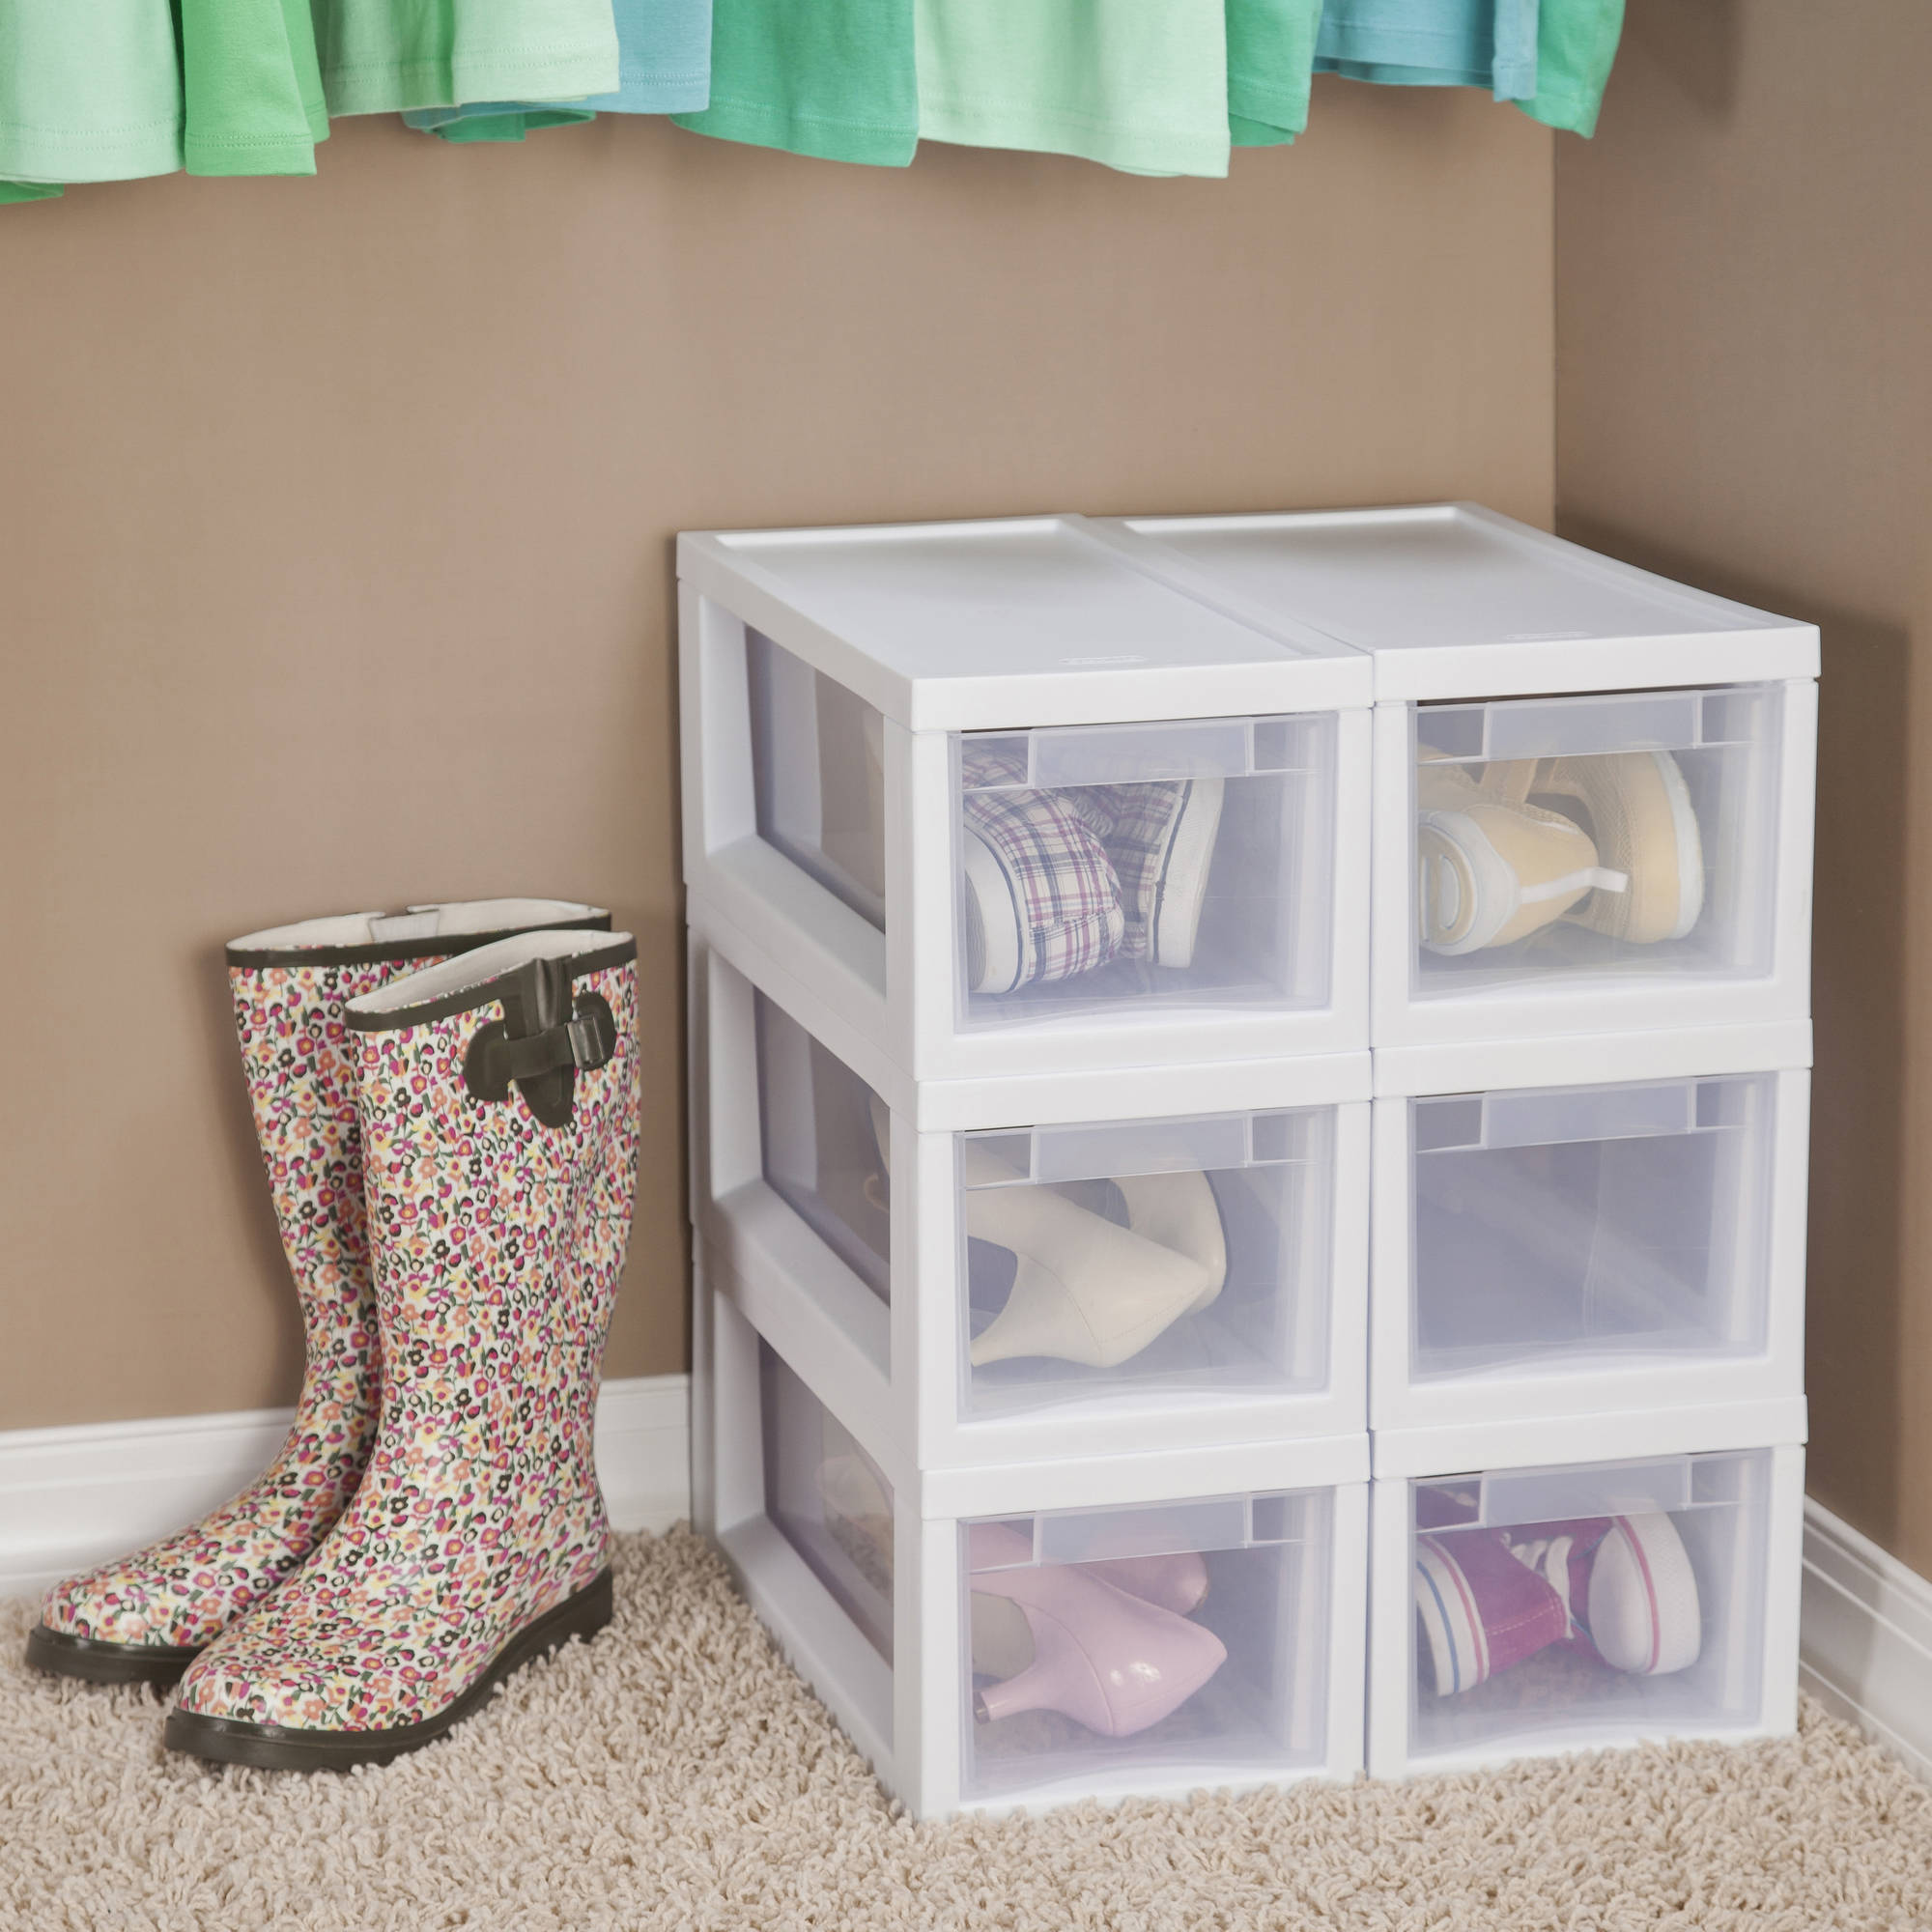 Sterilite Narrow Modular Drawers  White (Available In Case Of 6 Or Single  Unit)   Walmart.com